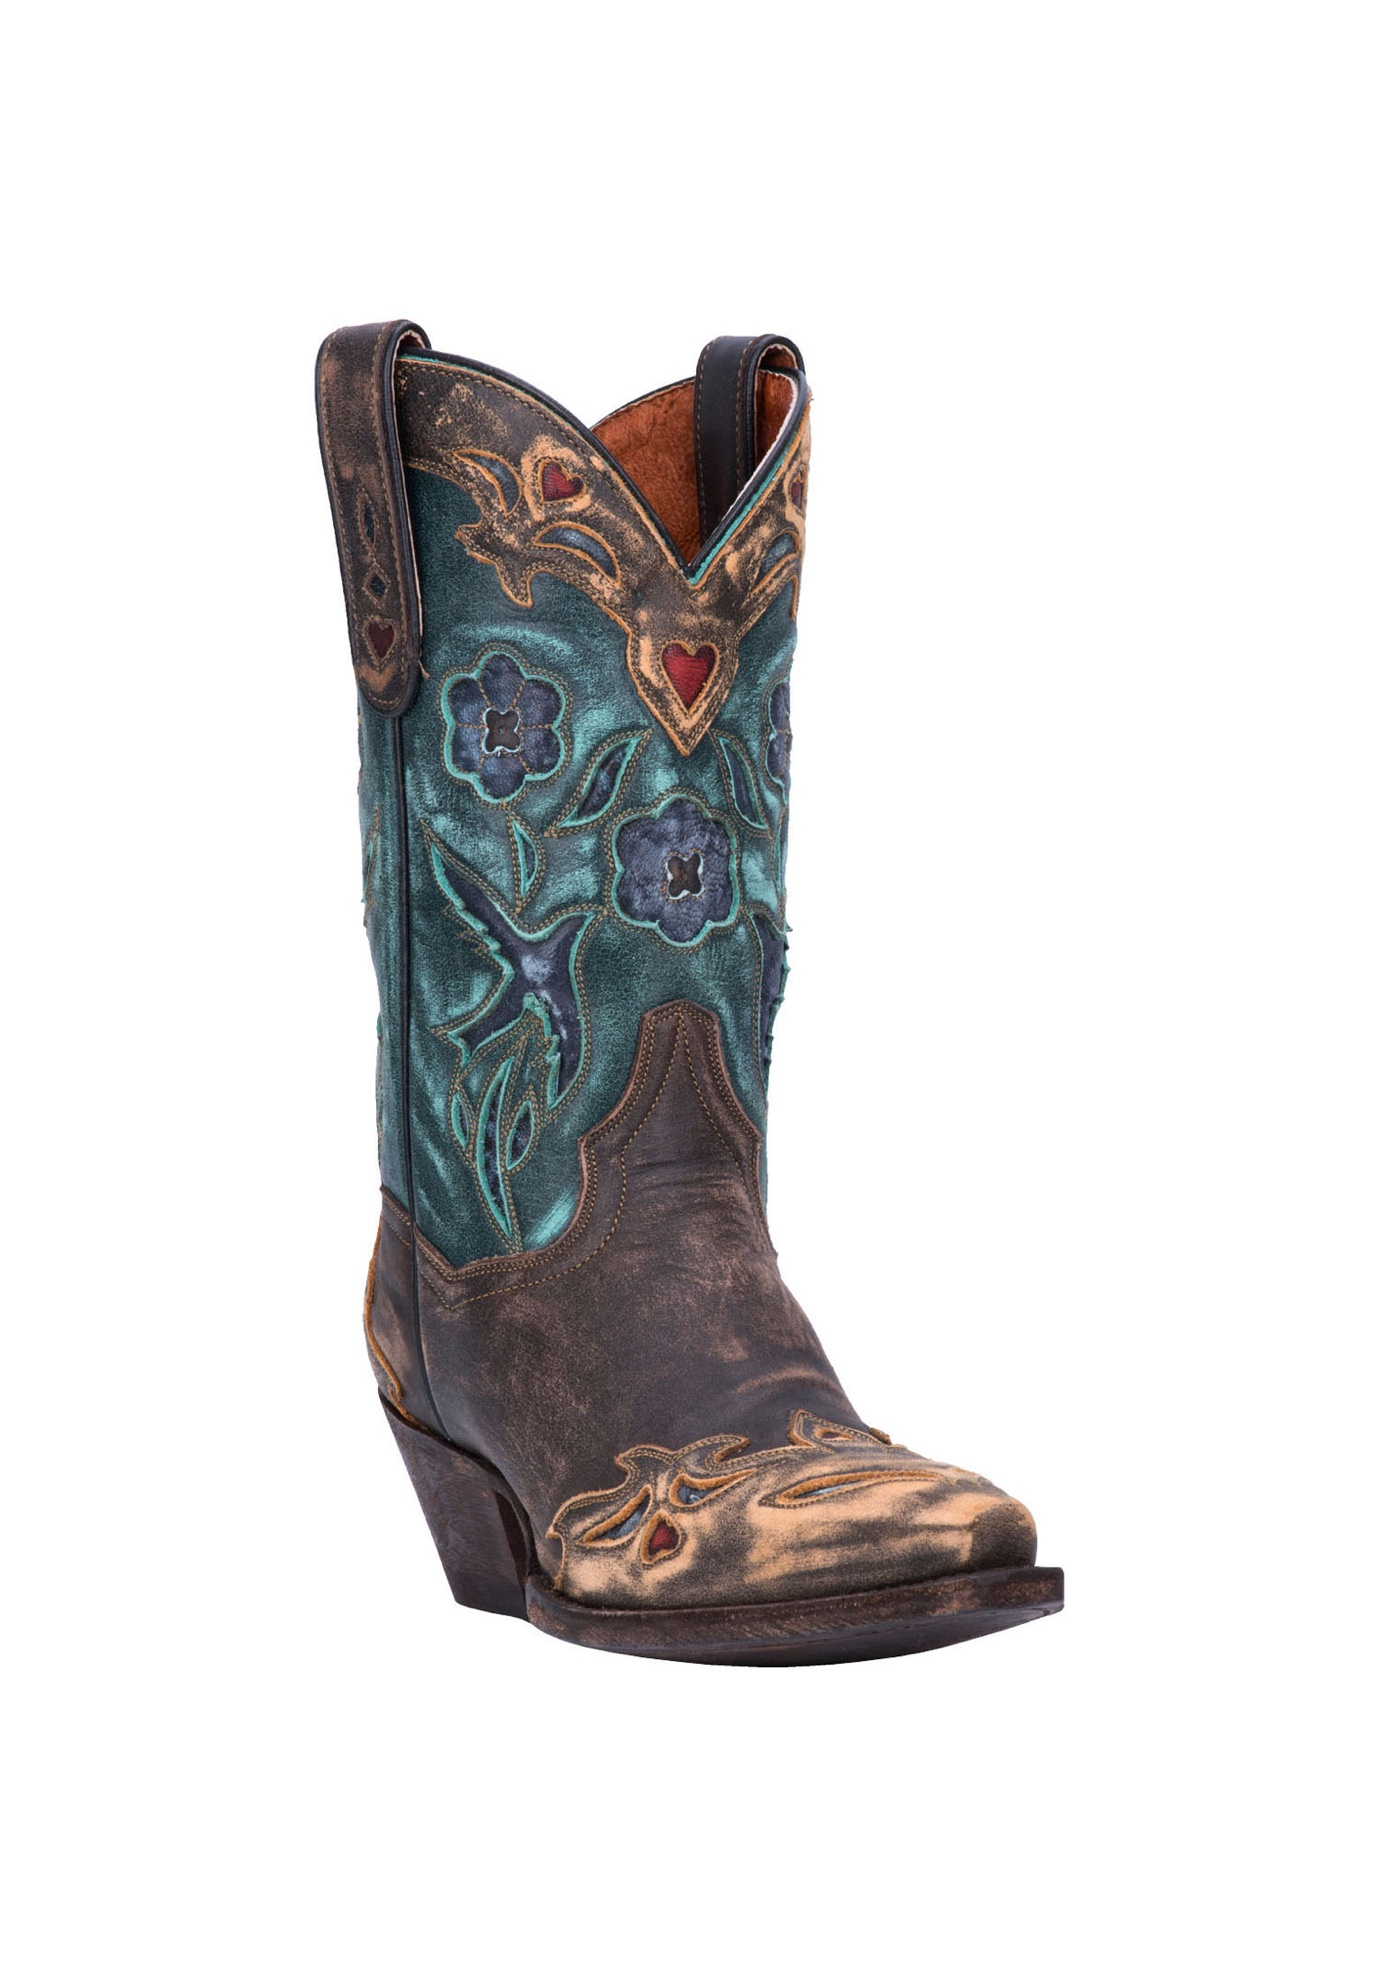 Vintage Bluebird Boot by Dan Post,